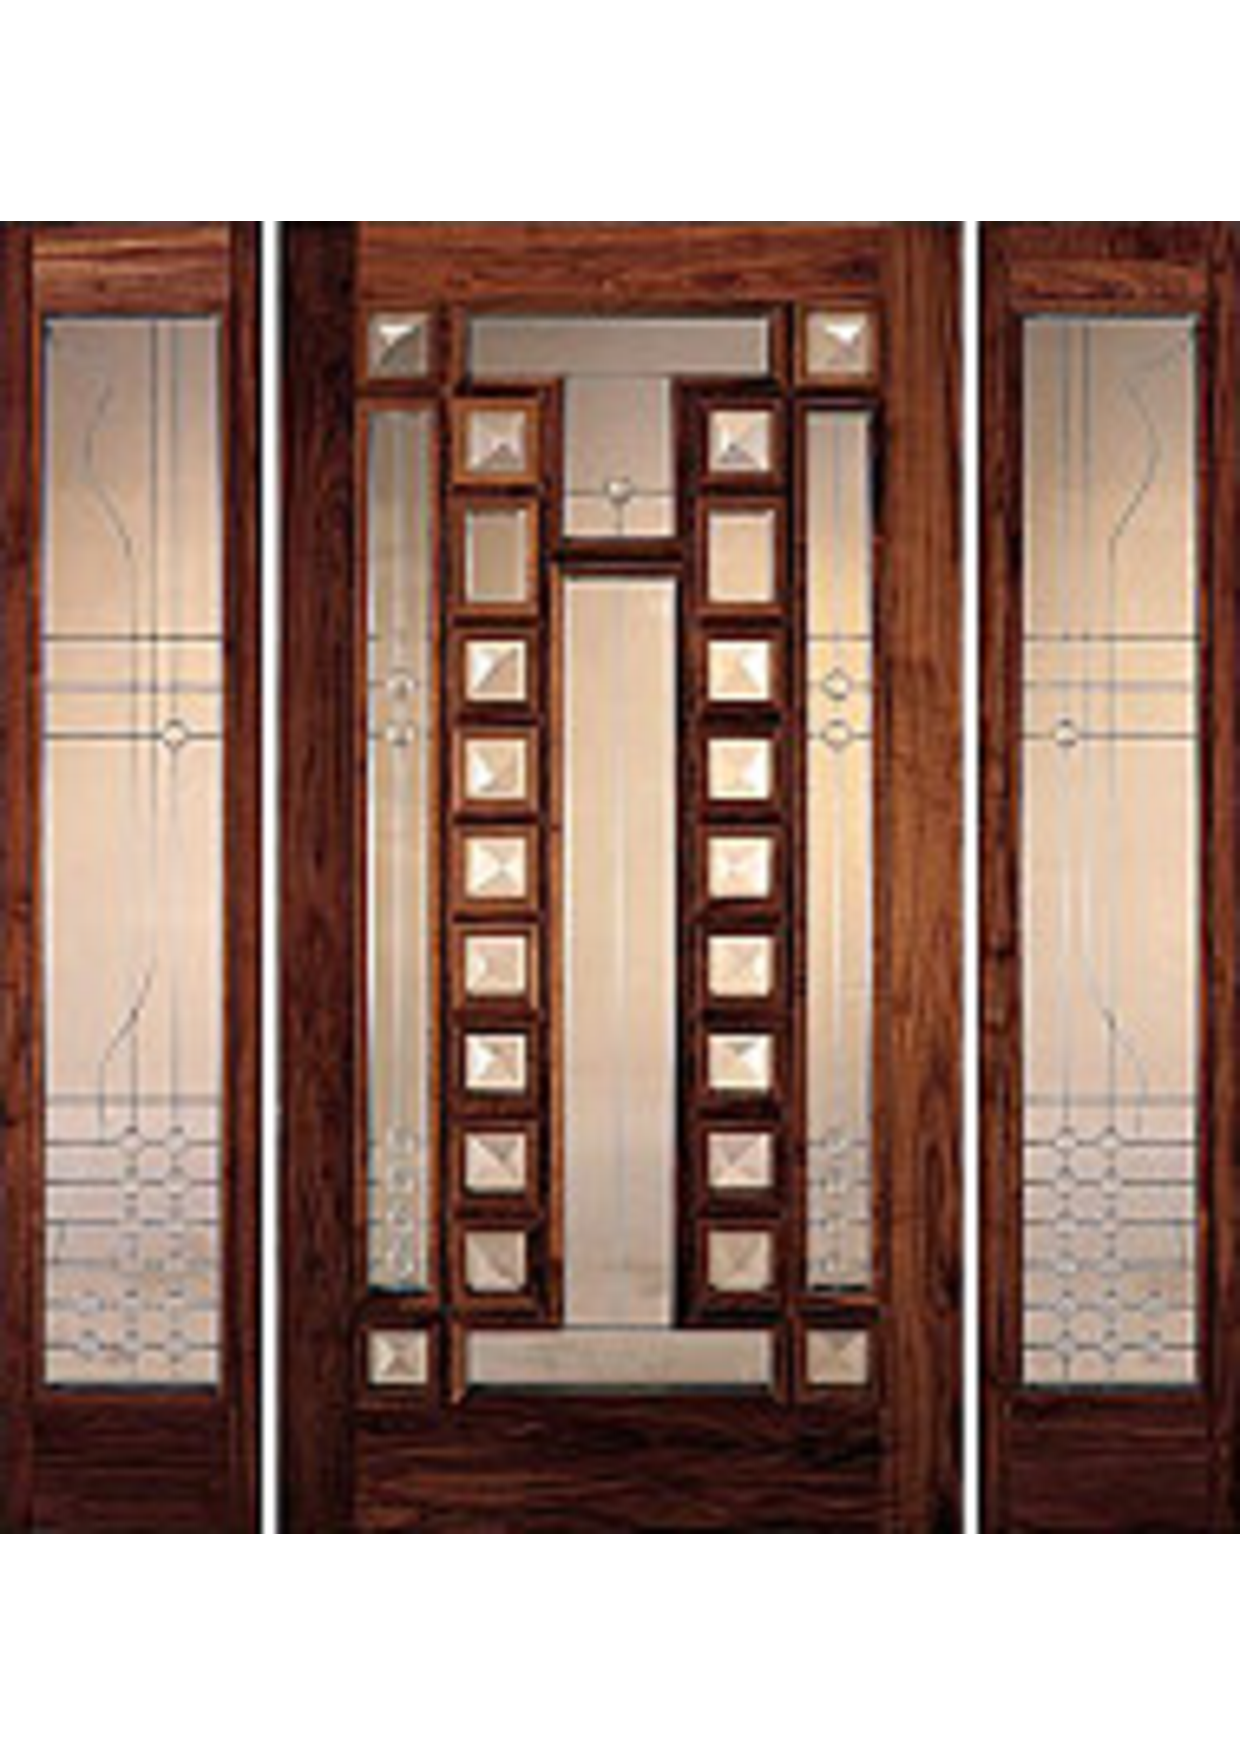 Living room door designs in india nakicphotography for Bed room gate design